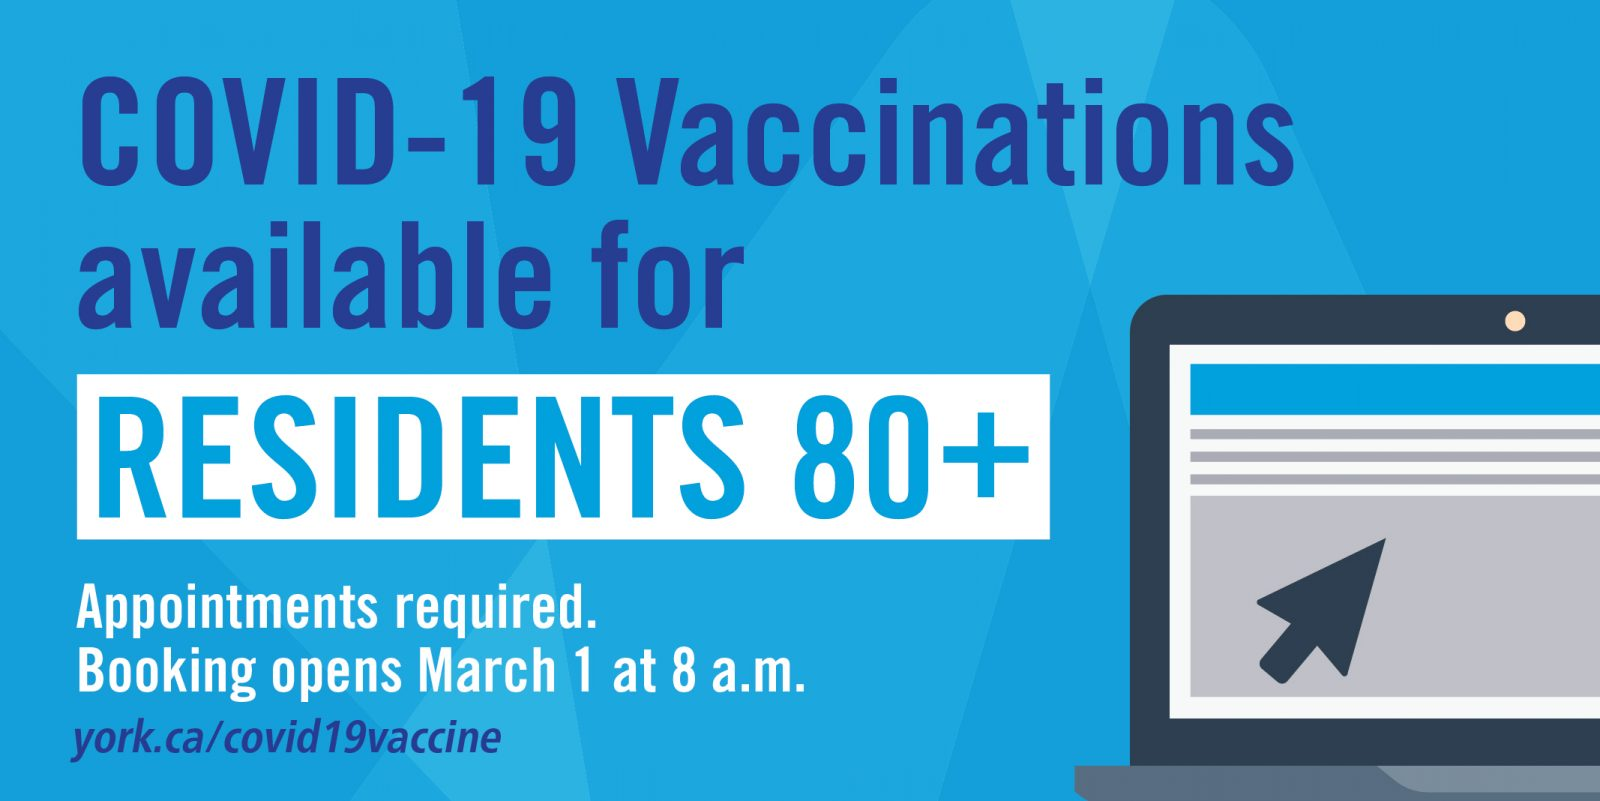 graphic of york region covid-19 vaccine for residents 80+